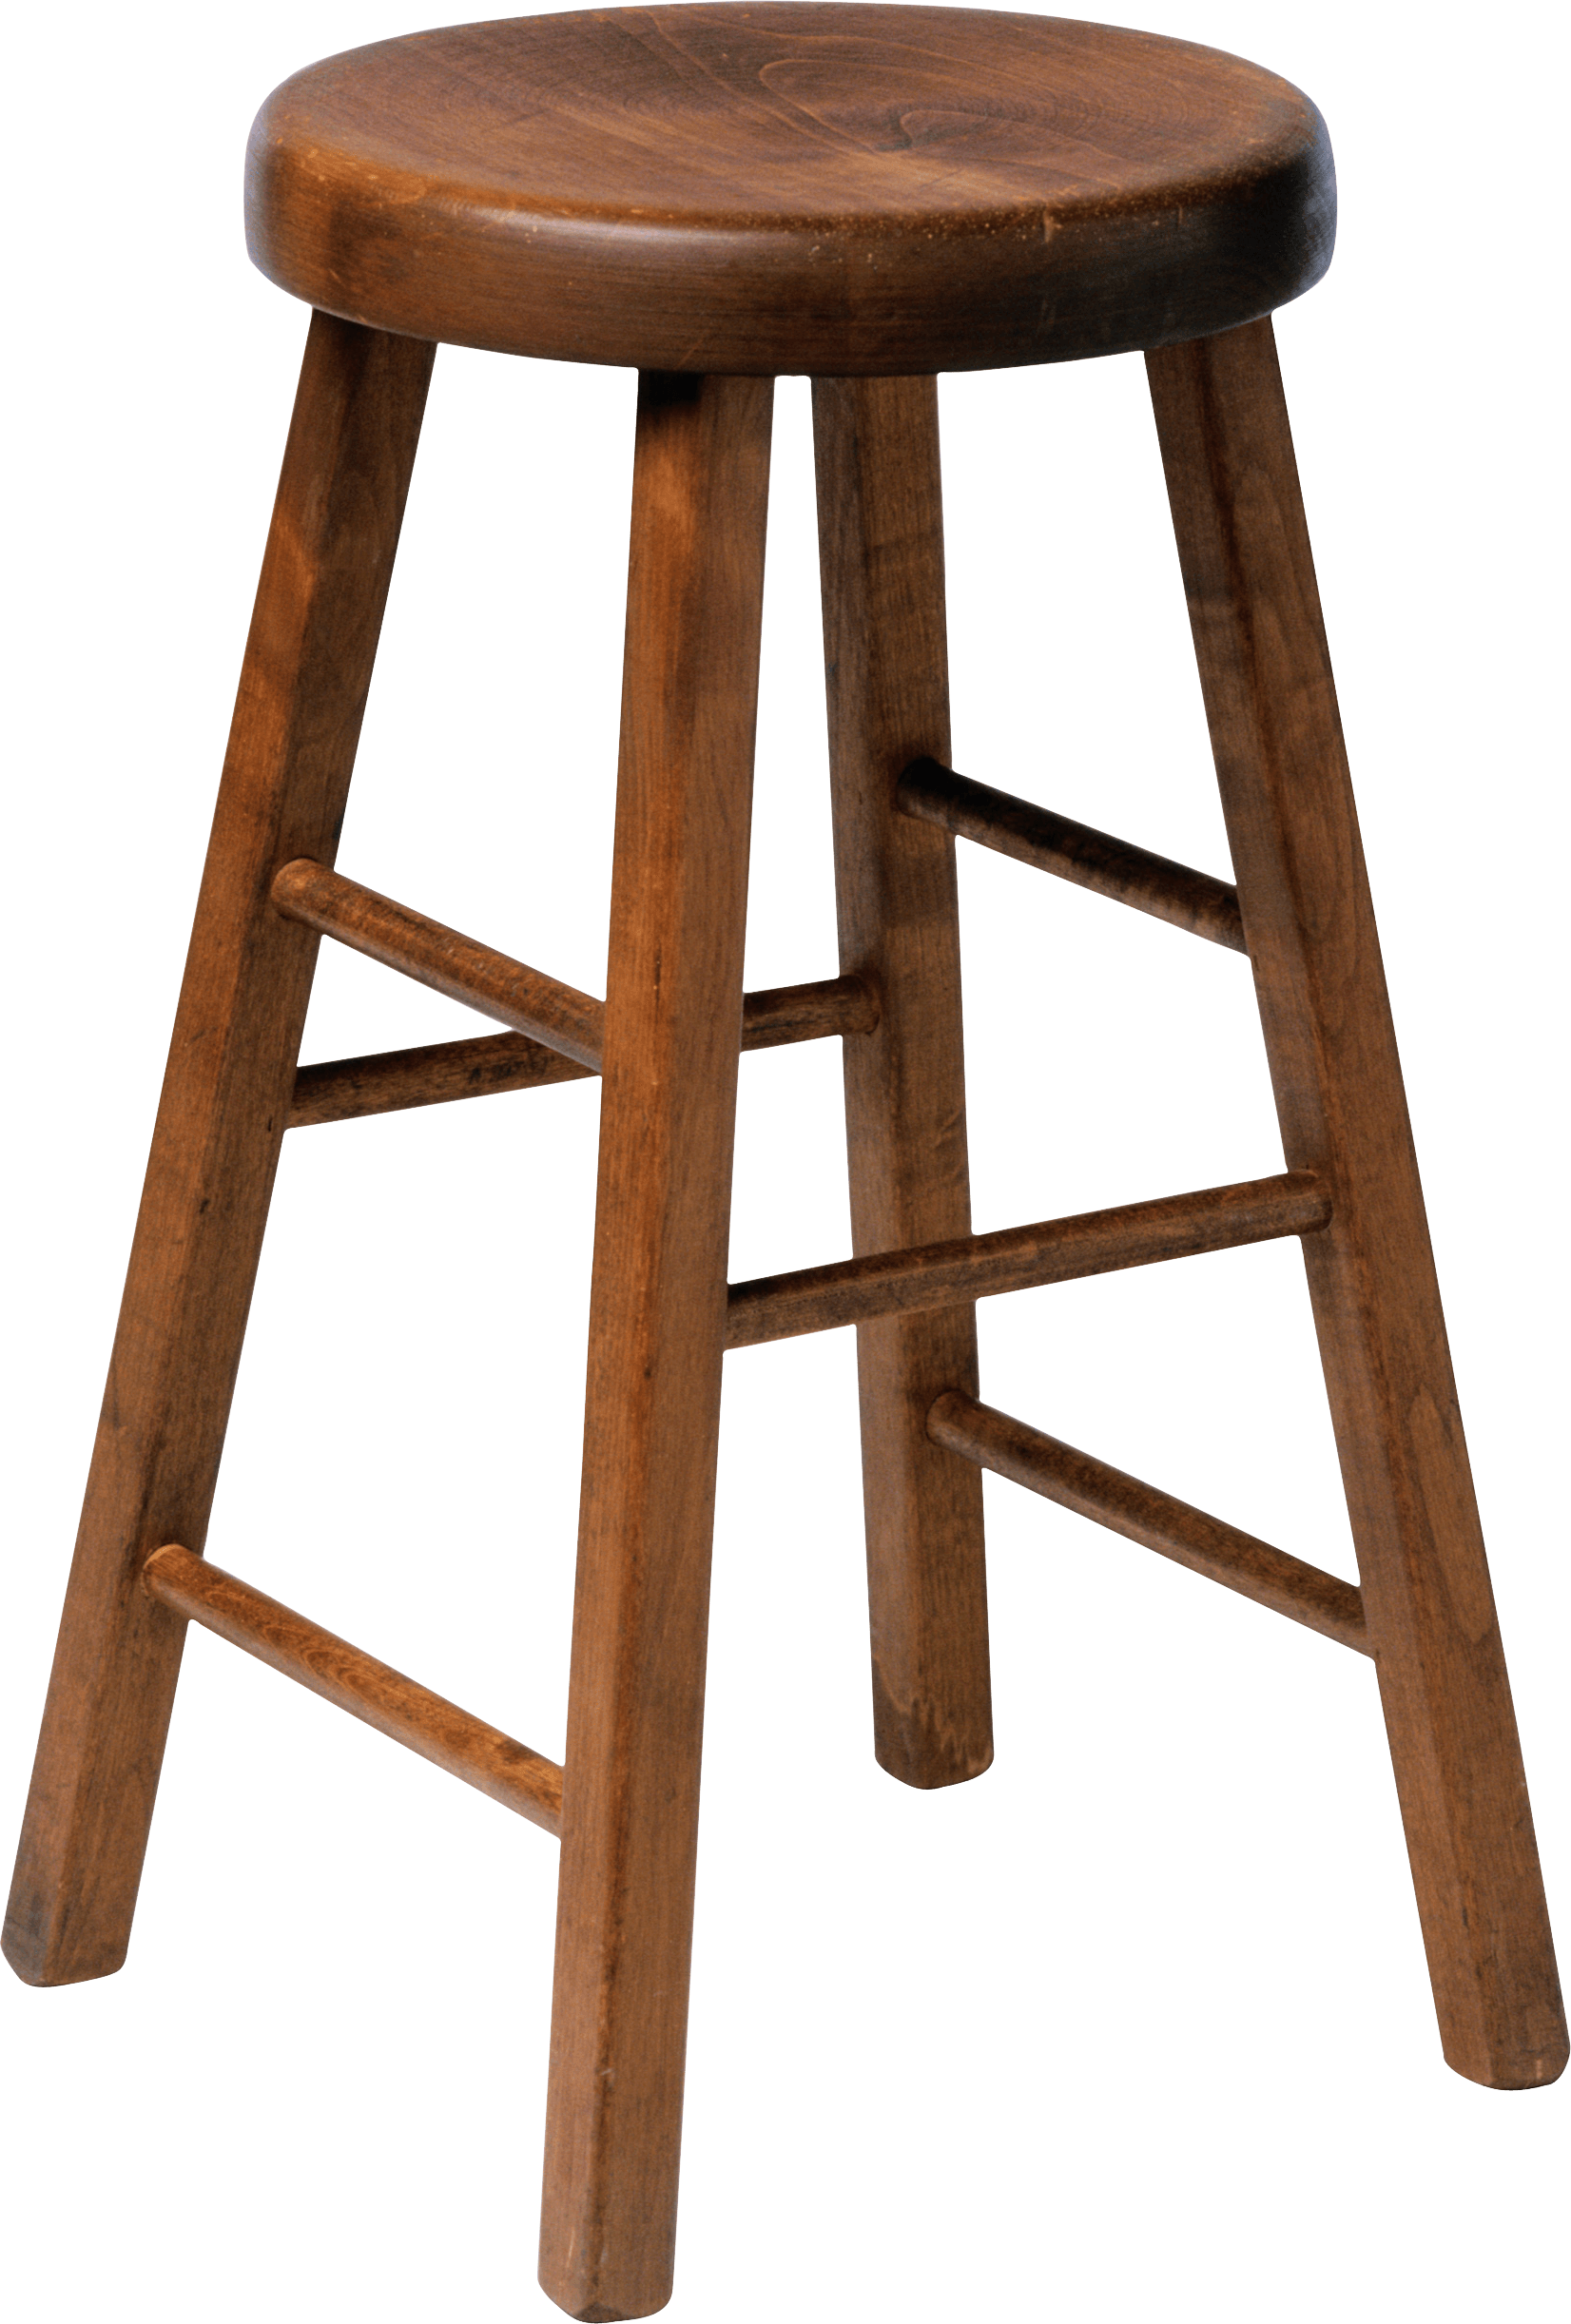 chair stools wooden a affair stool transparent png stickpng